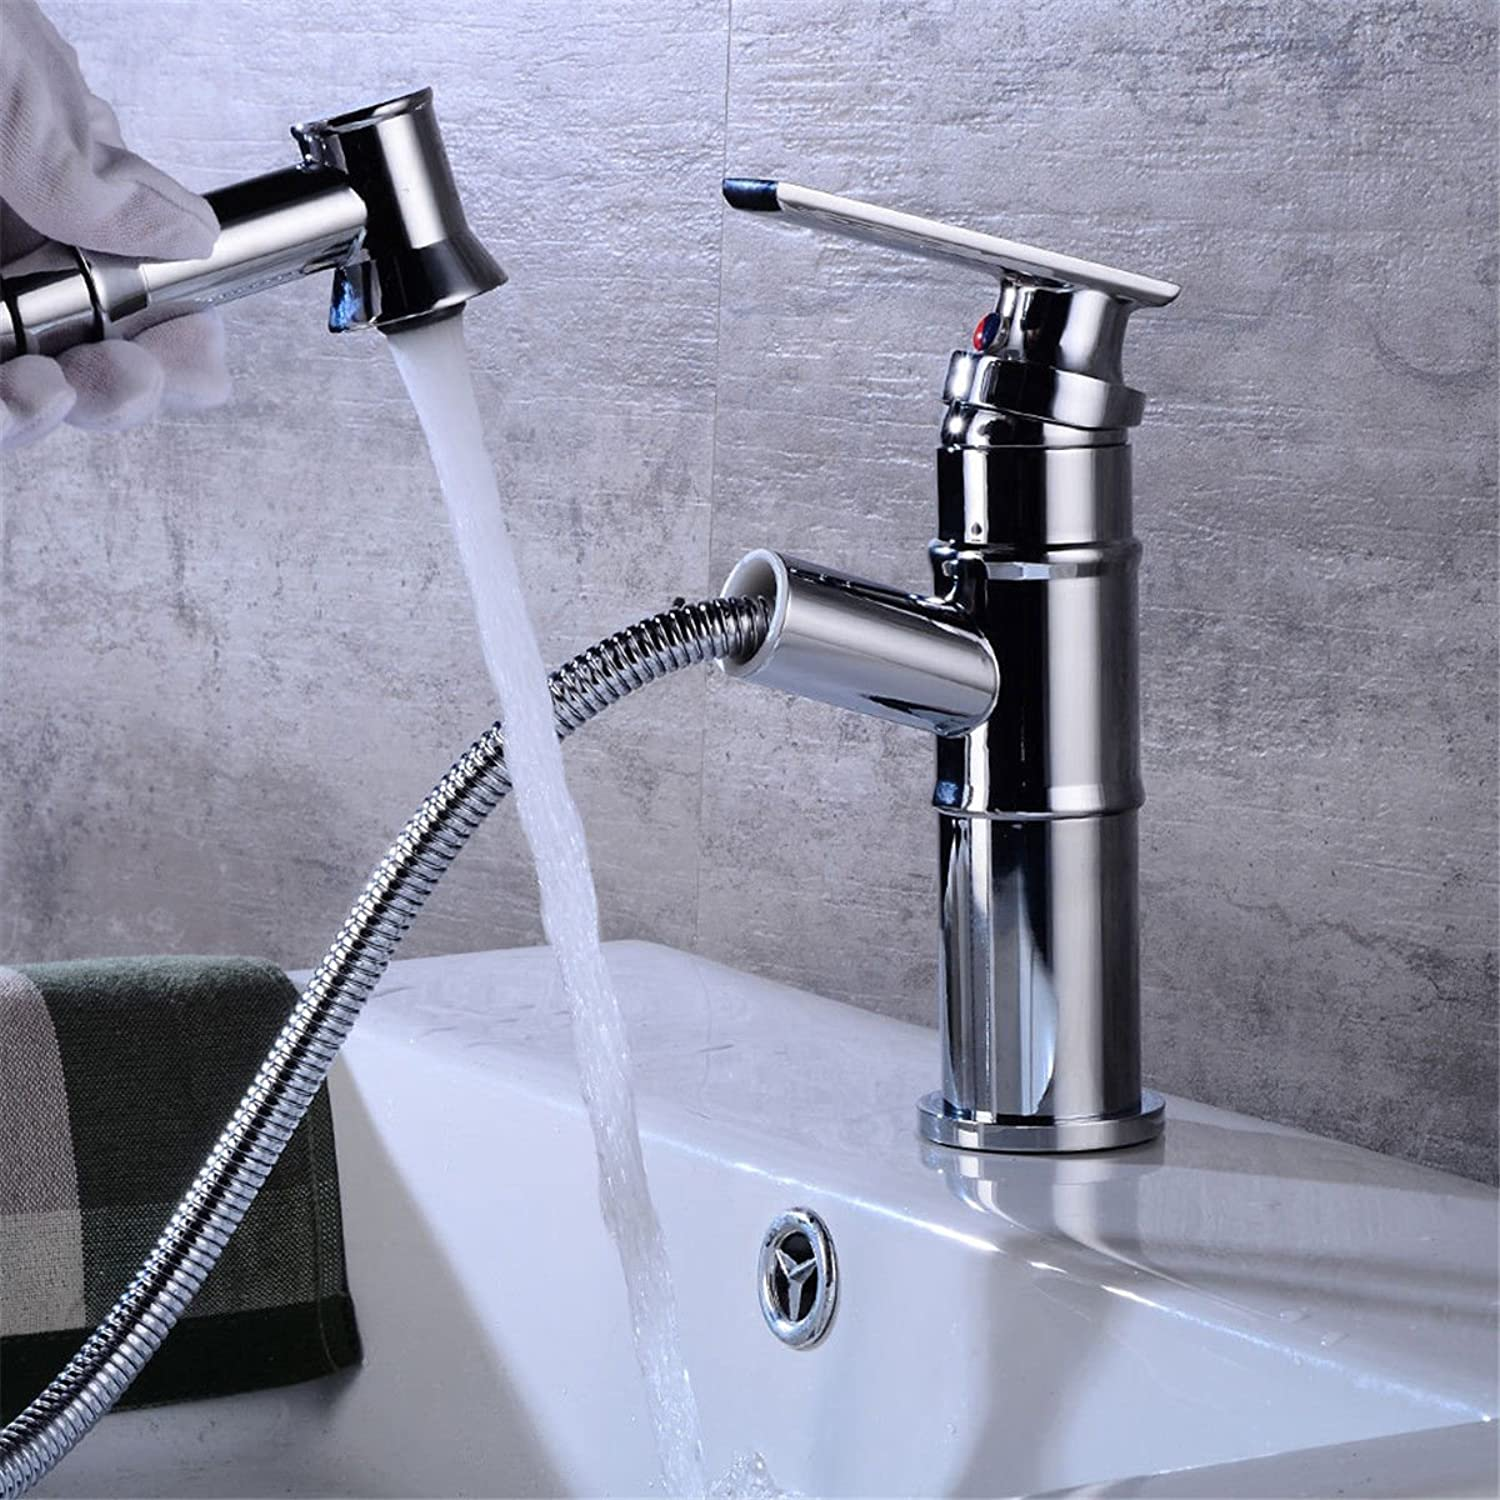 AQMMi Basin Taps Bathroom Sink Faucet Chrome Plated Pull-Out Hot and Cold Water Bathroom Sink Faucet Basin Mixer Tap